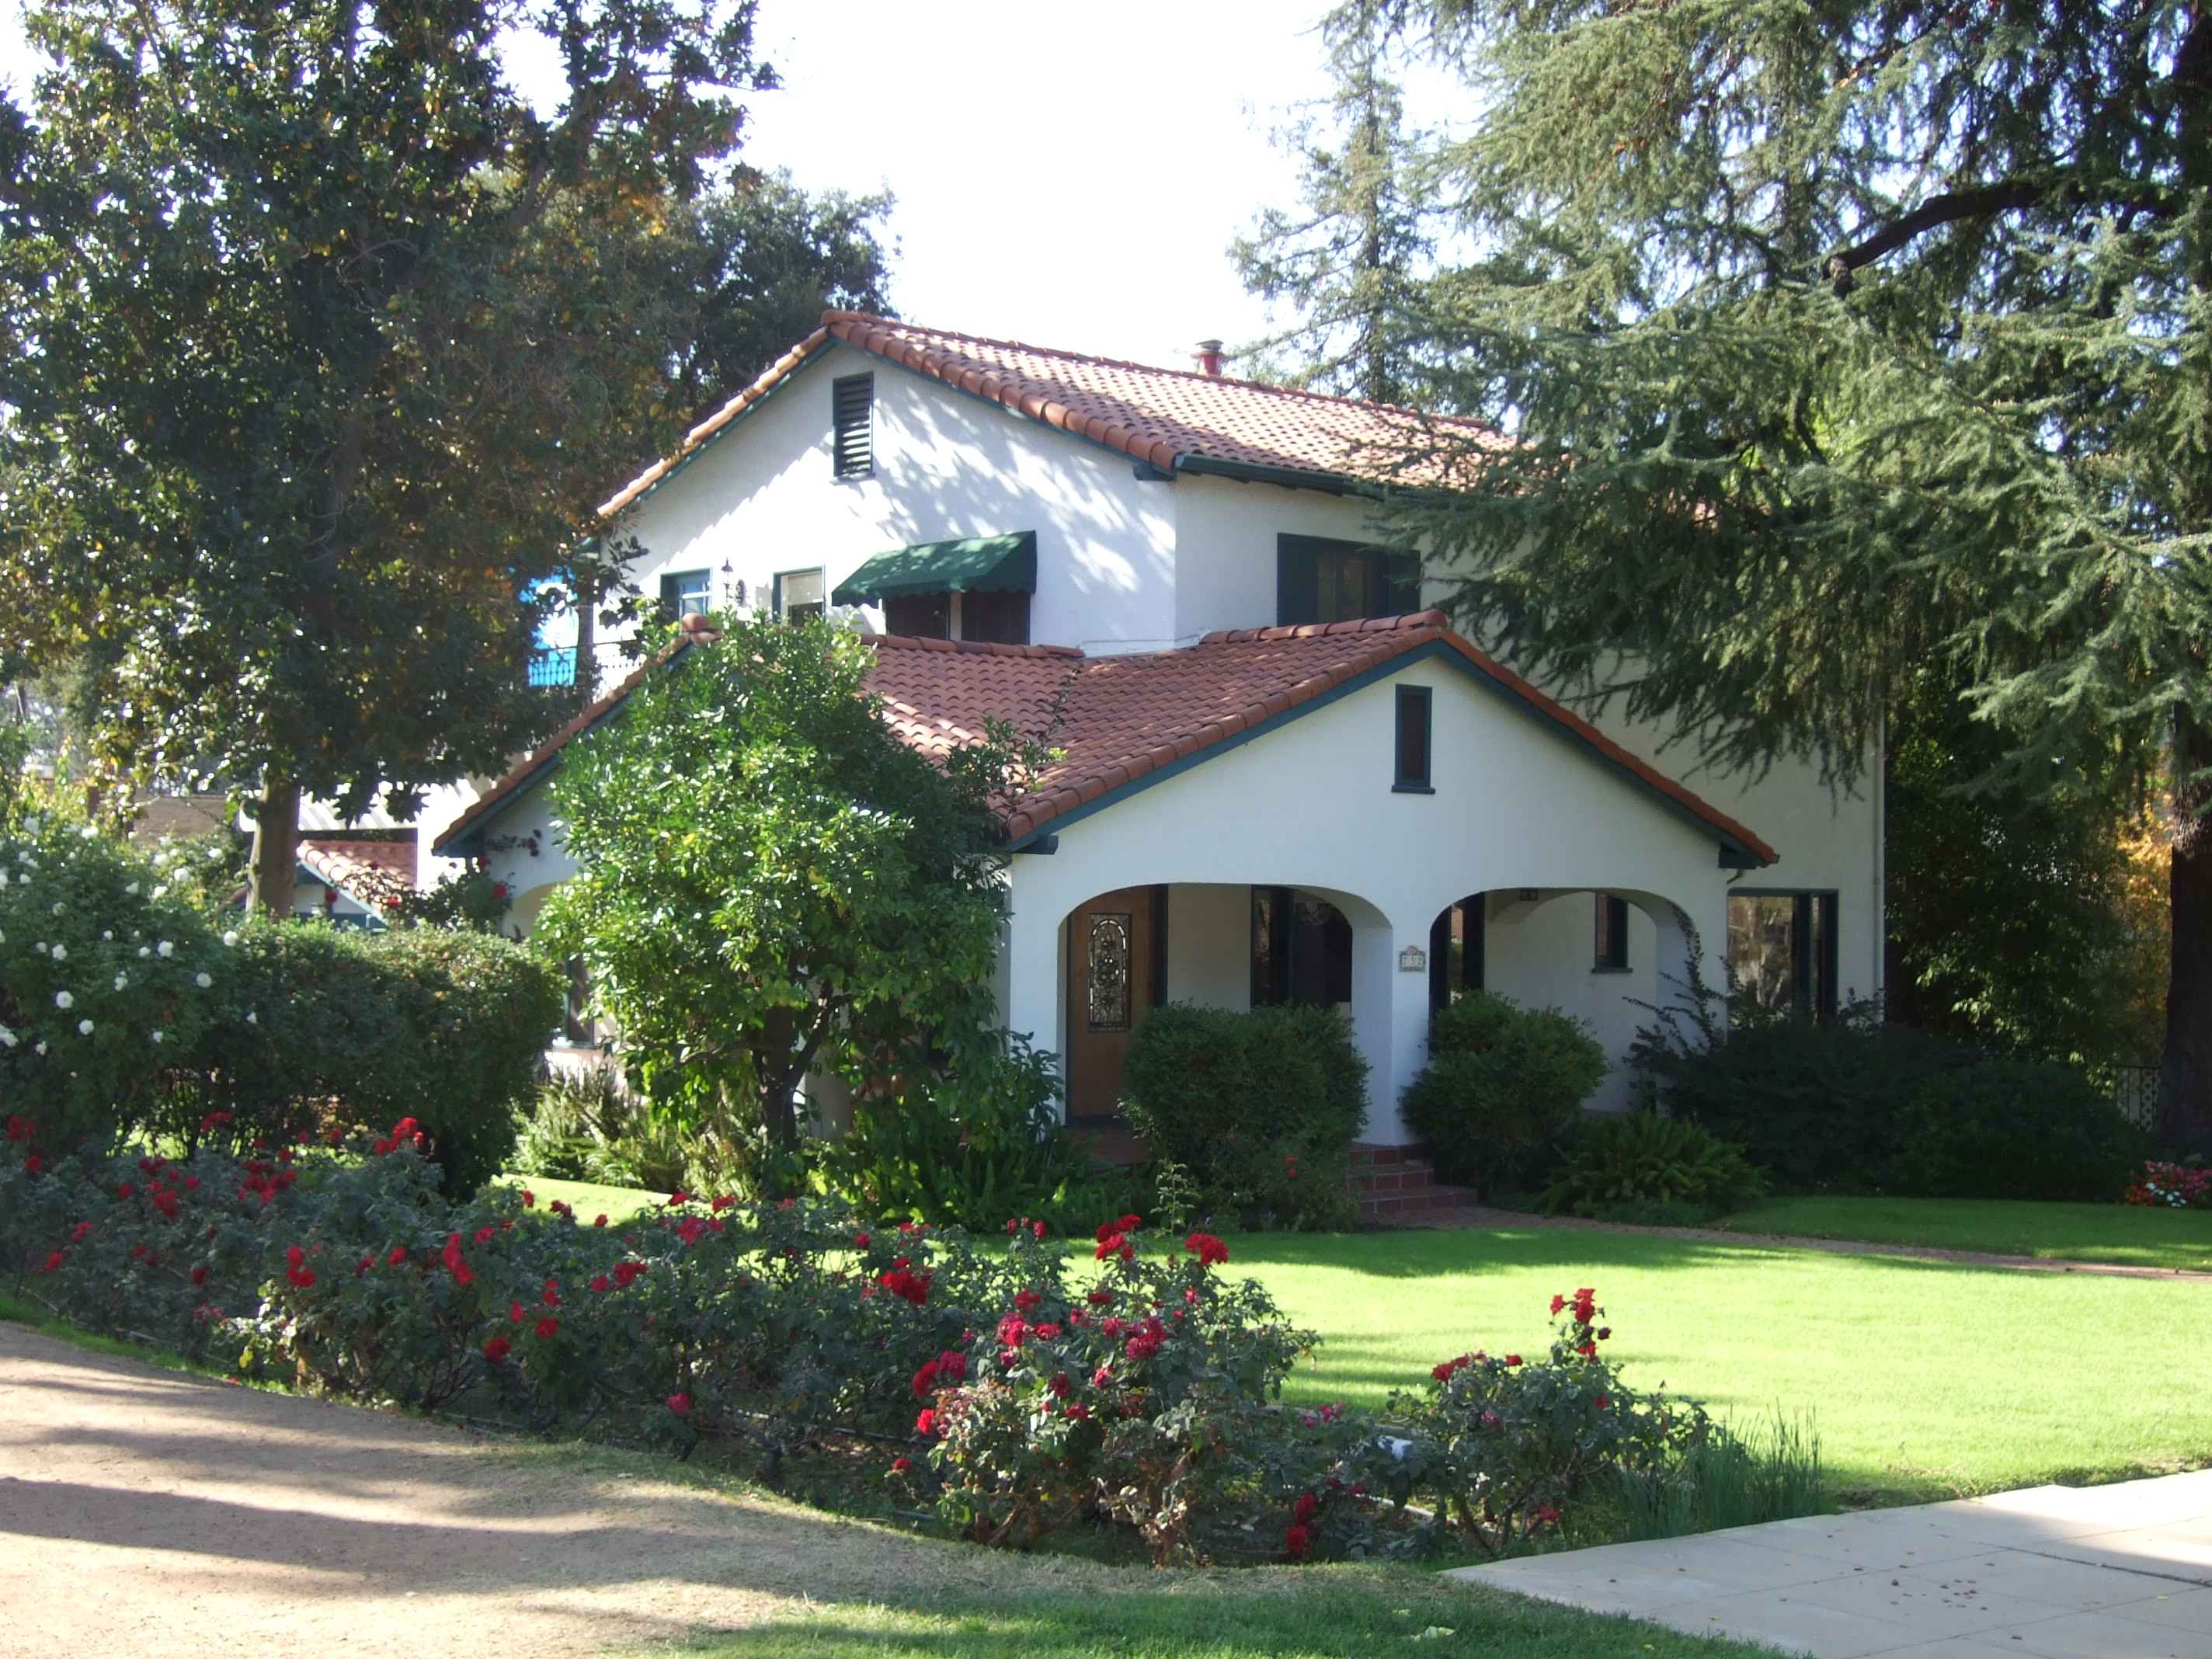 1920's Spanish Revival house